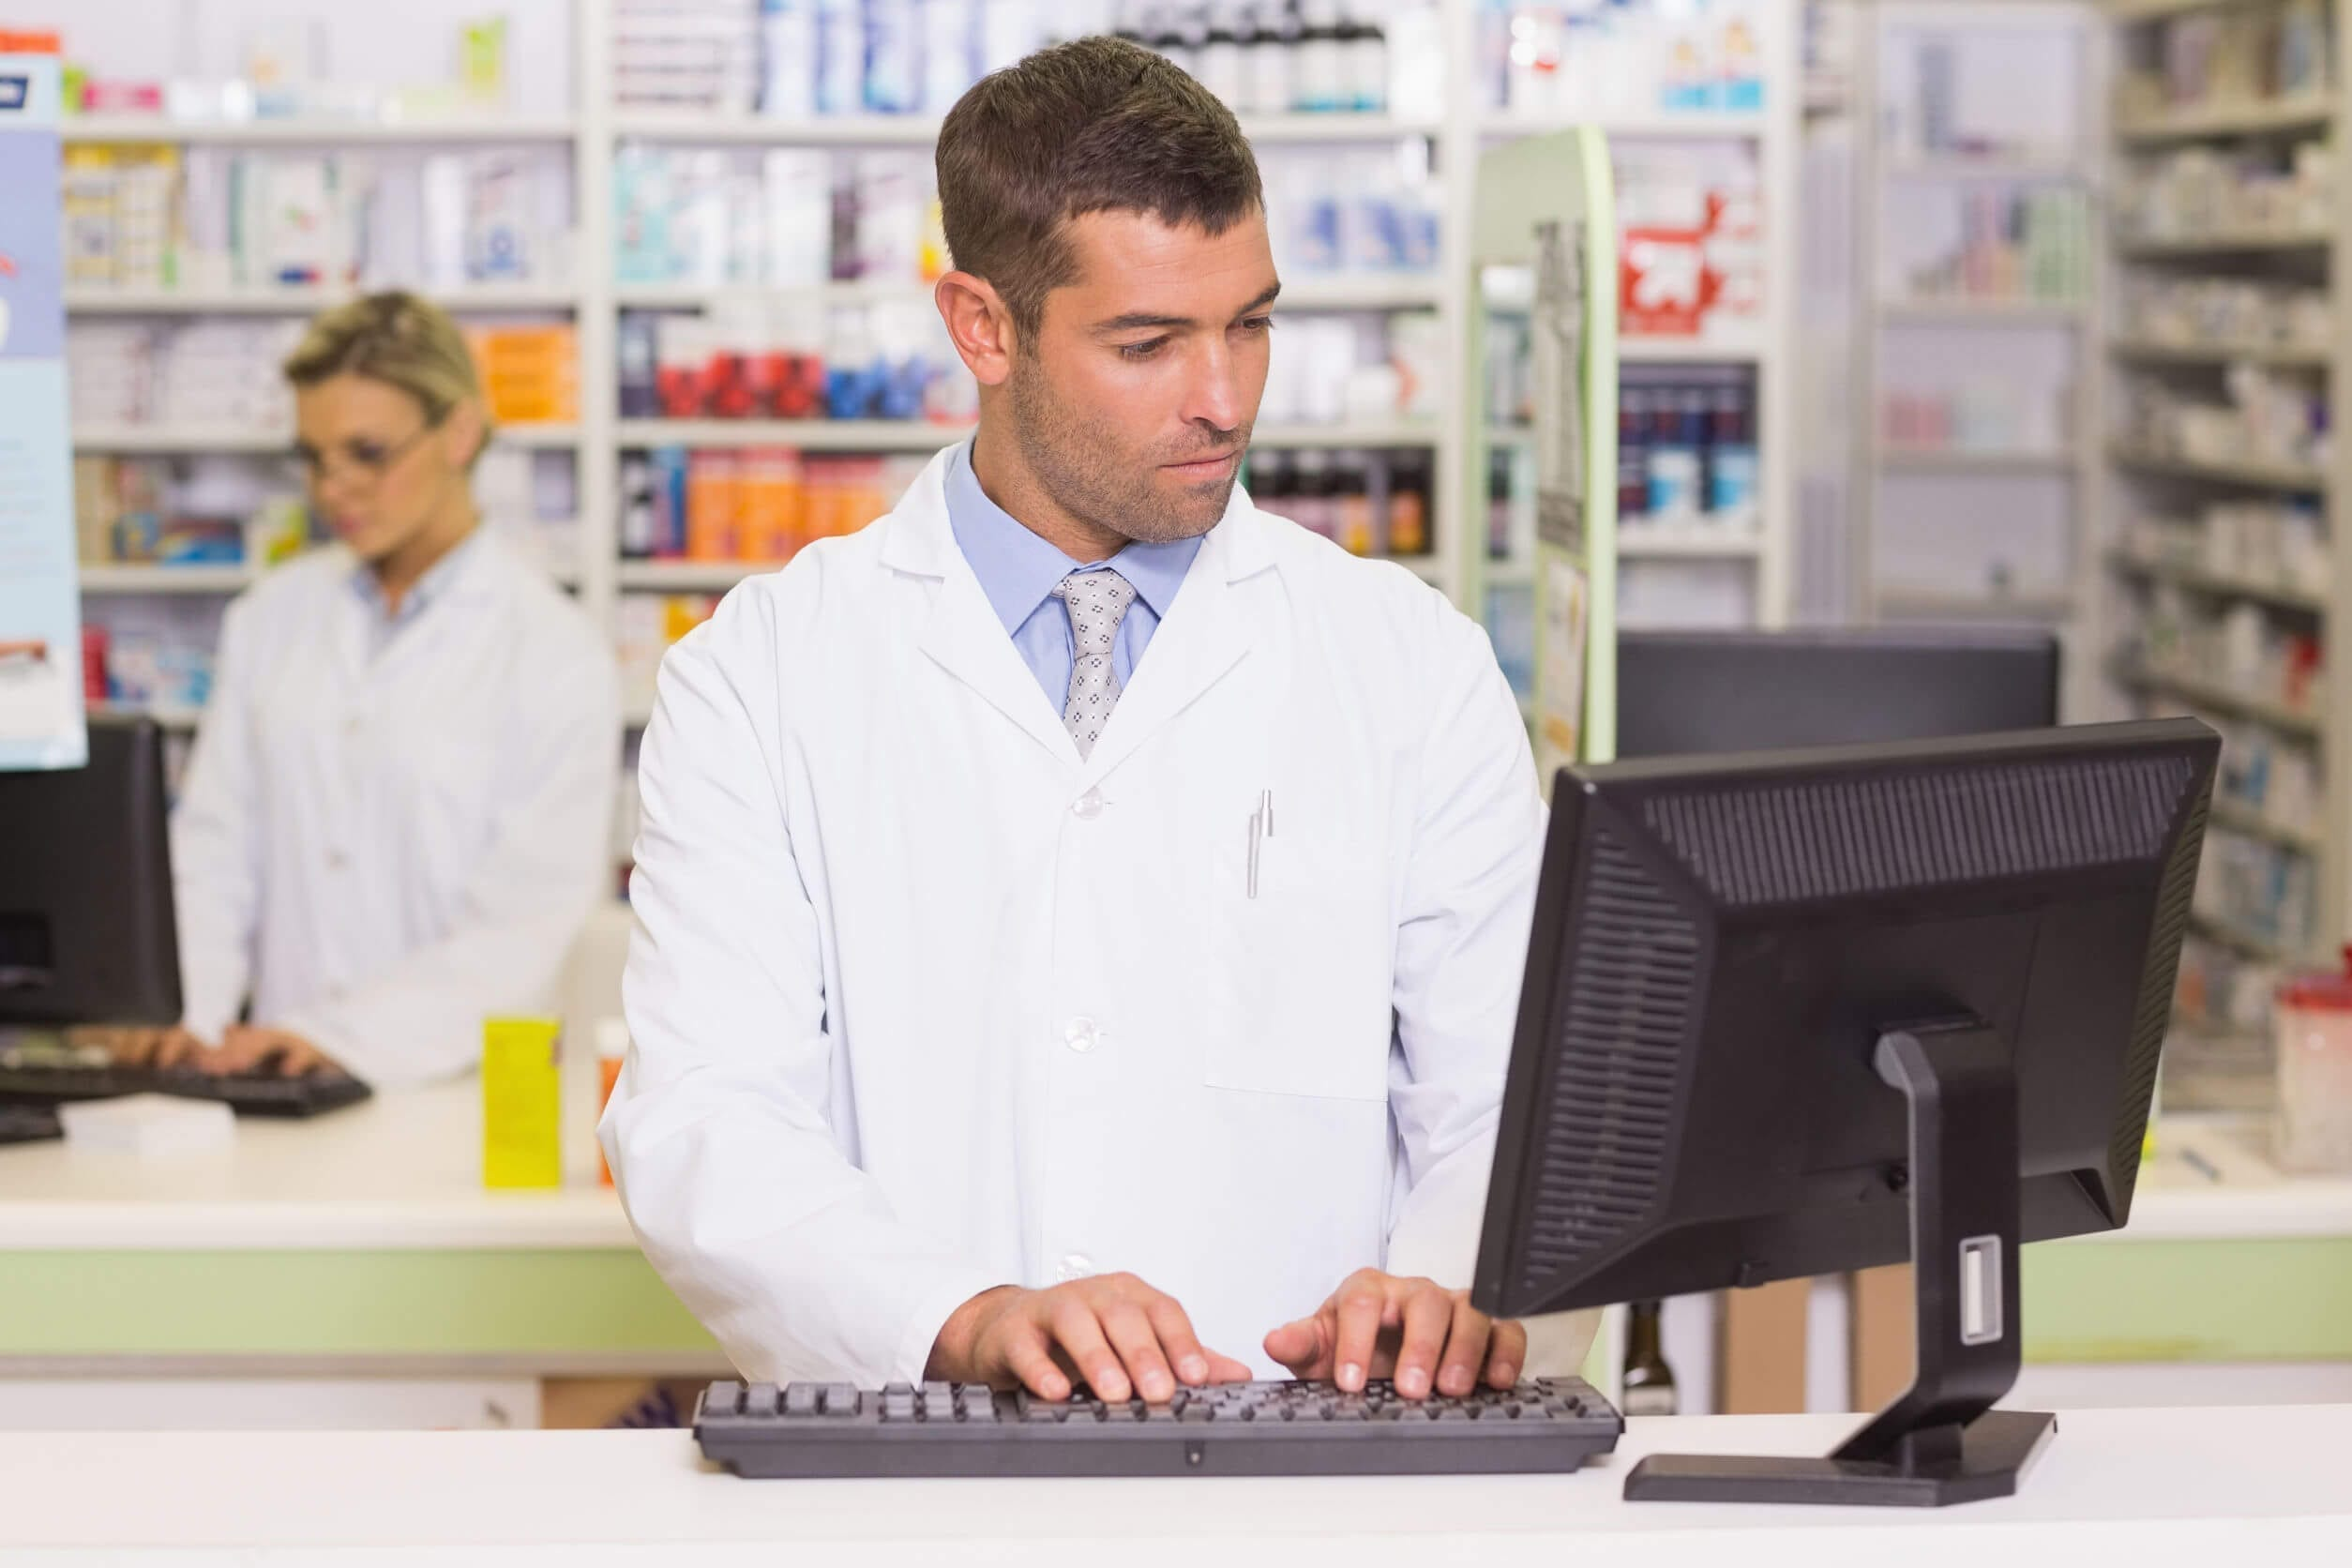 Your Texas Pharmacist Made an Error That Injured You – Can You Sue?